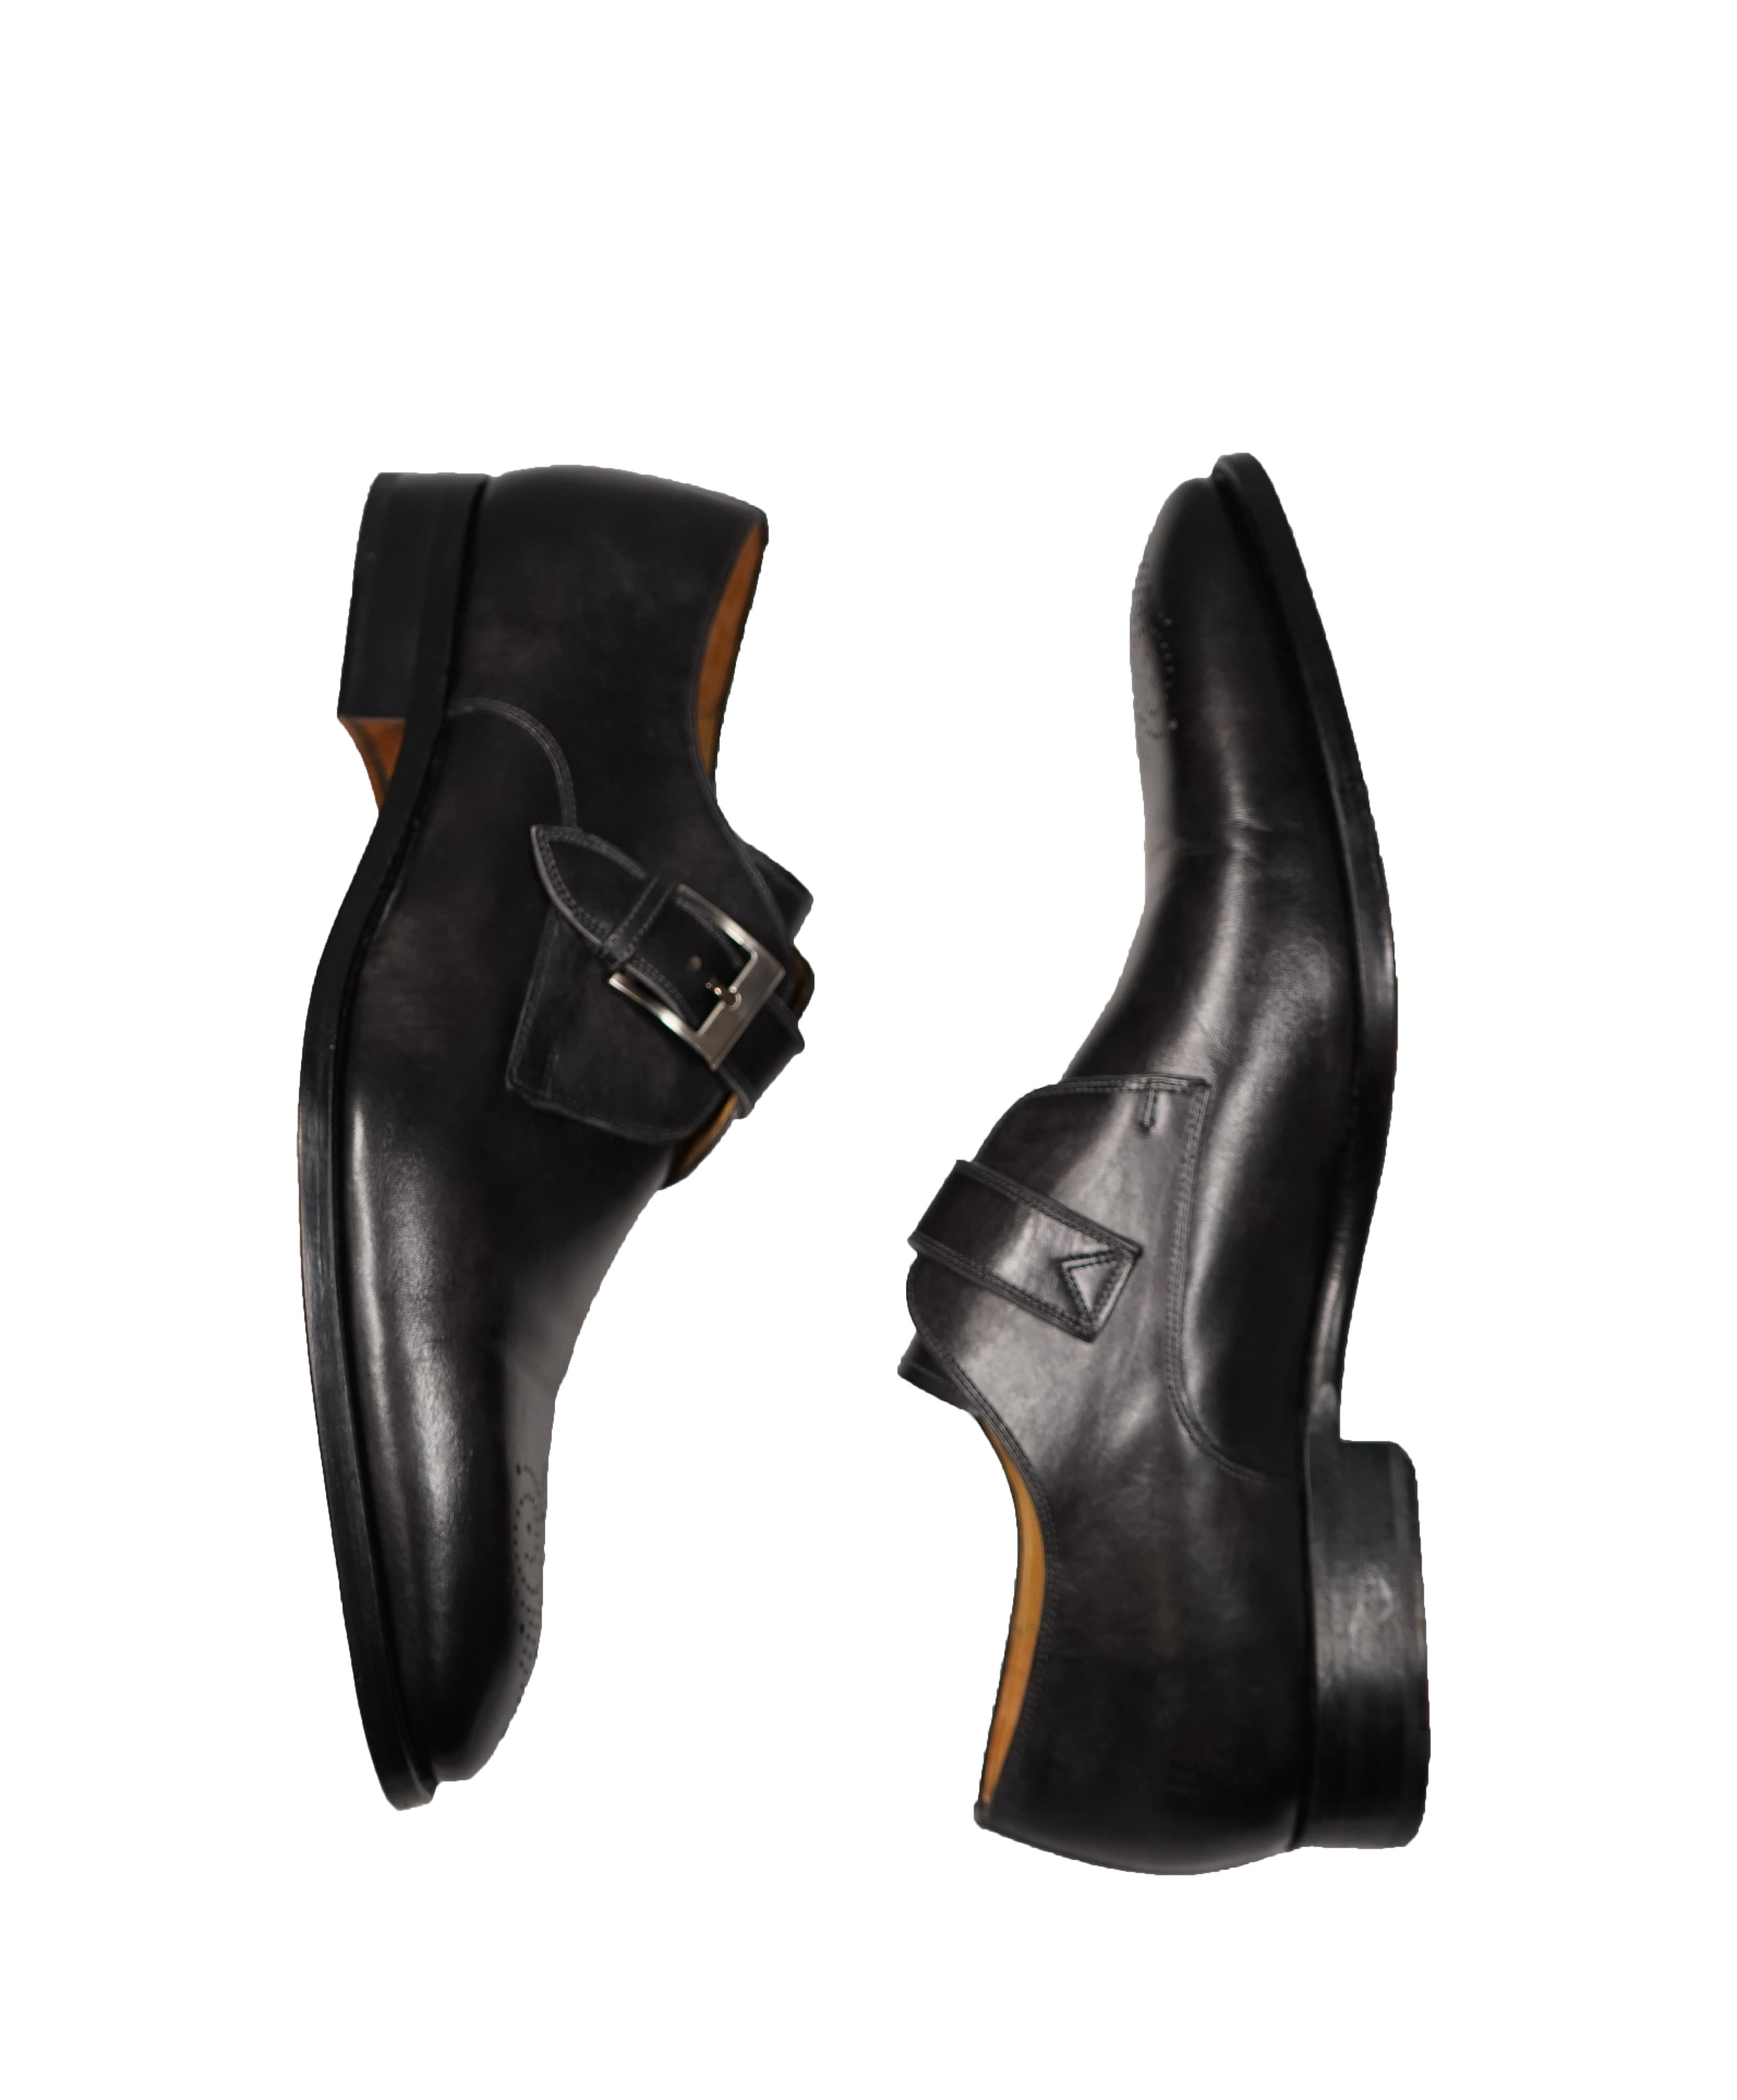 MAGNANNI - Single Monk Strap Loafers Brogue Tip -13